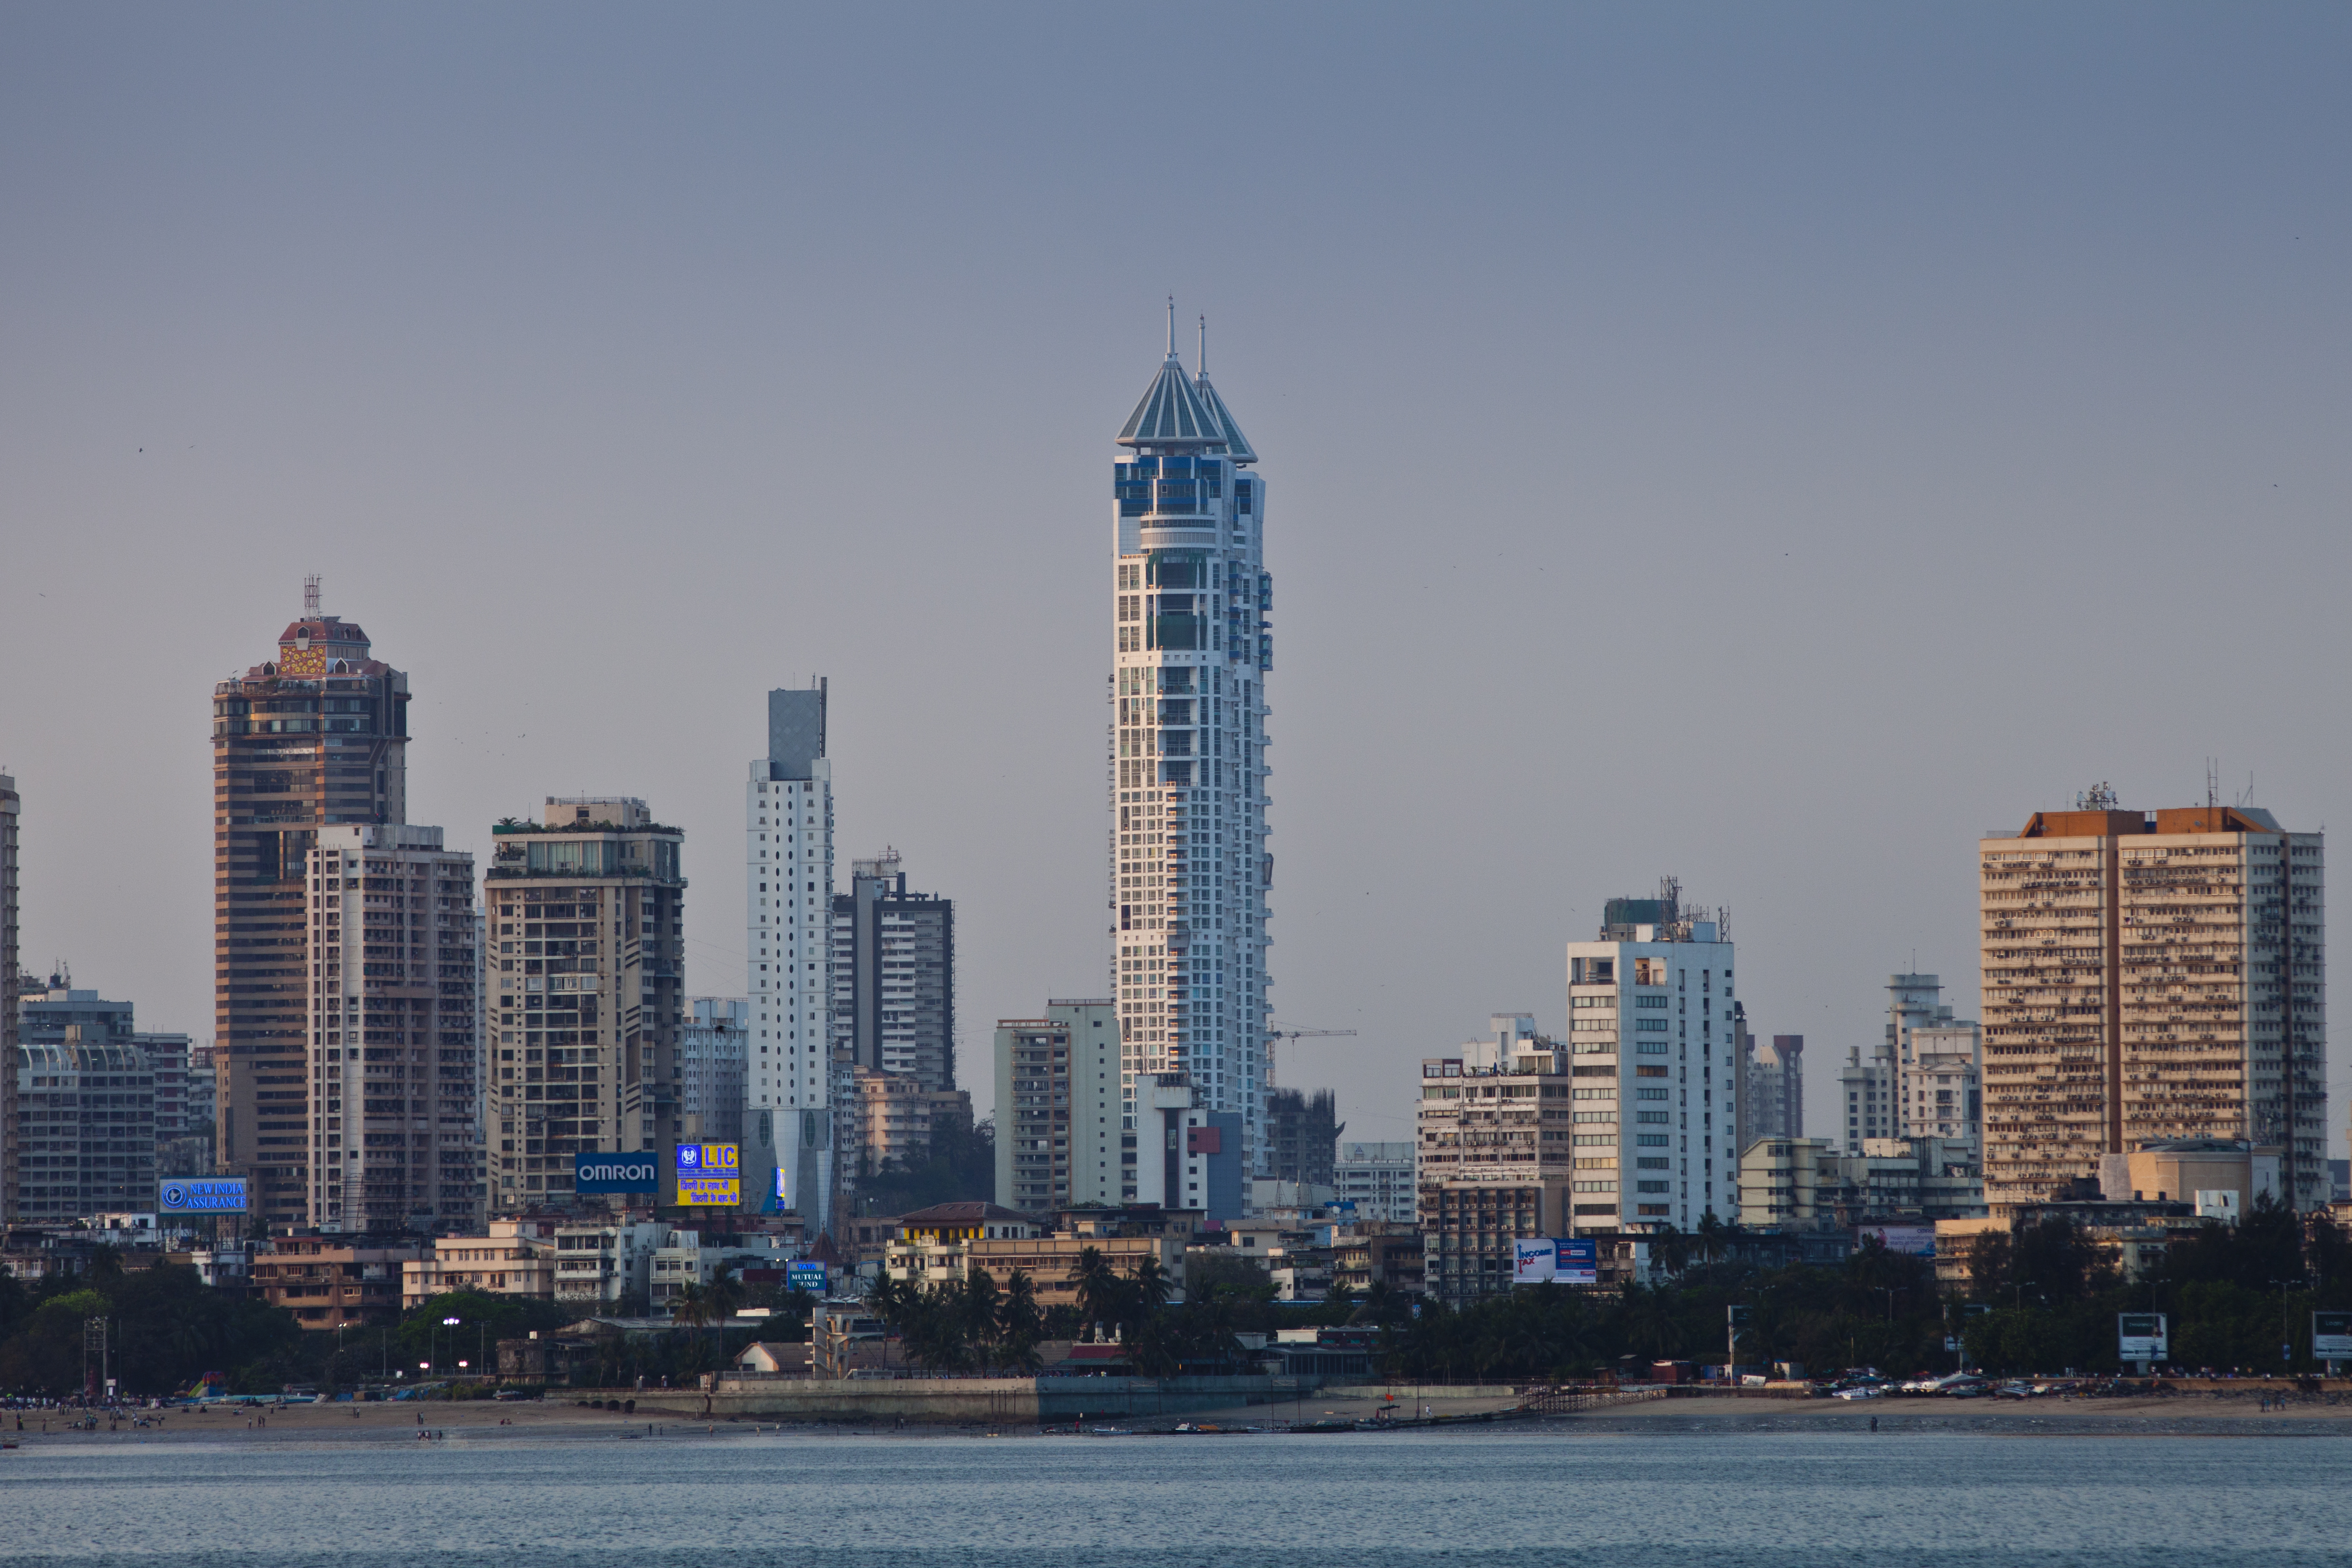 Twin Towers & Business District, South Mumbai, India